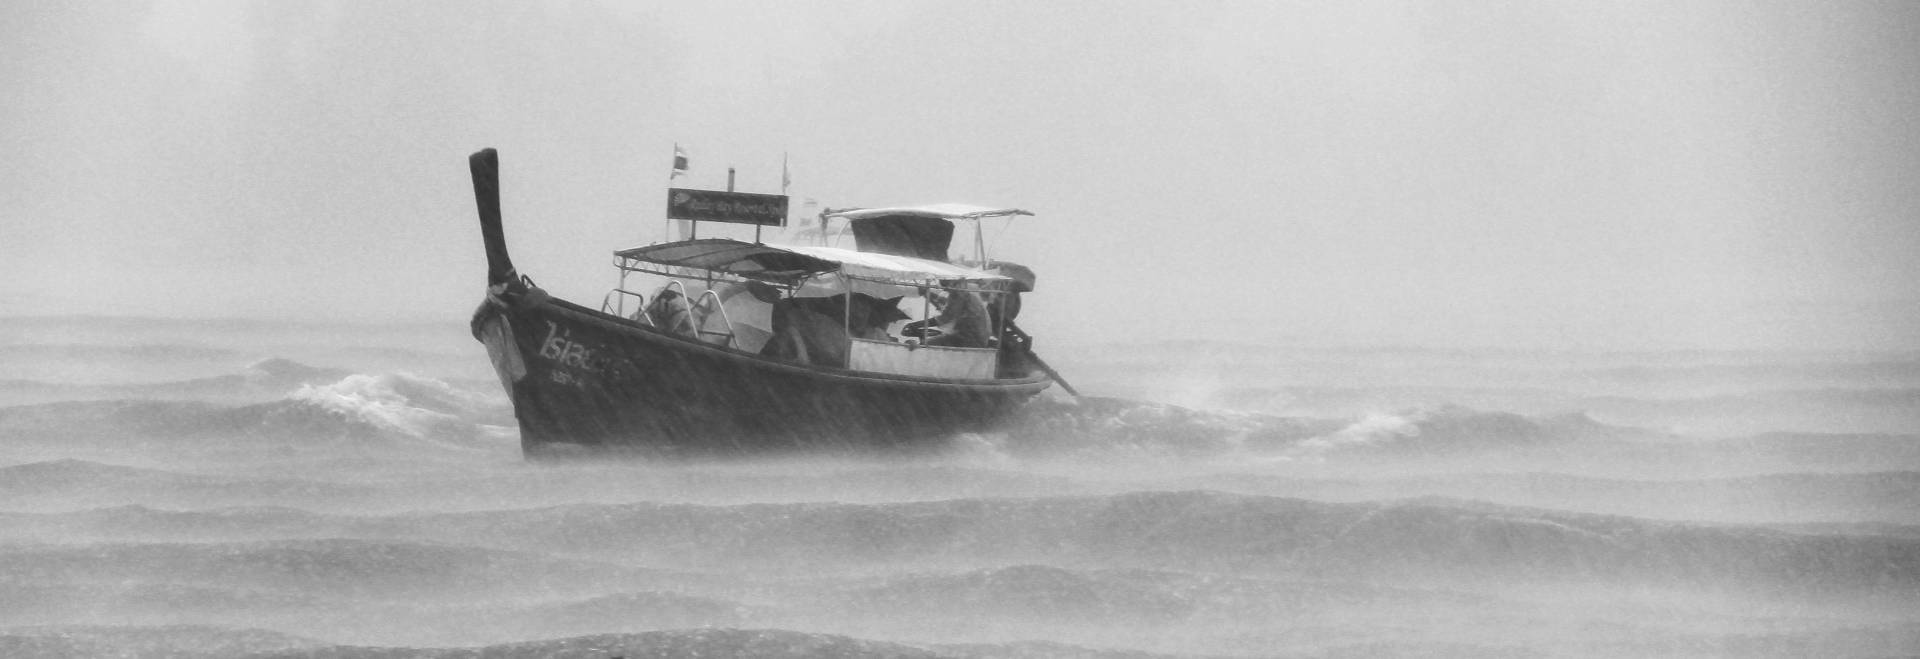 Infographic – 5 Tips For Avoiding Boat Accidents In Bad Weather